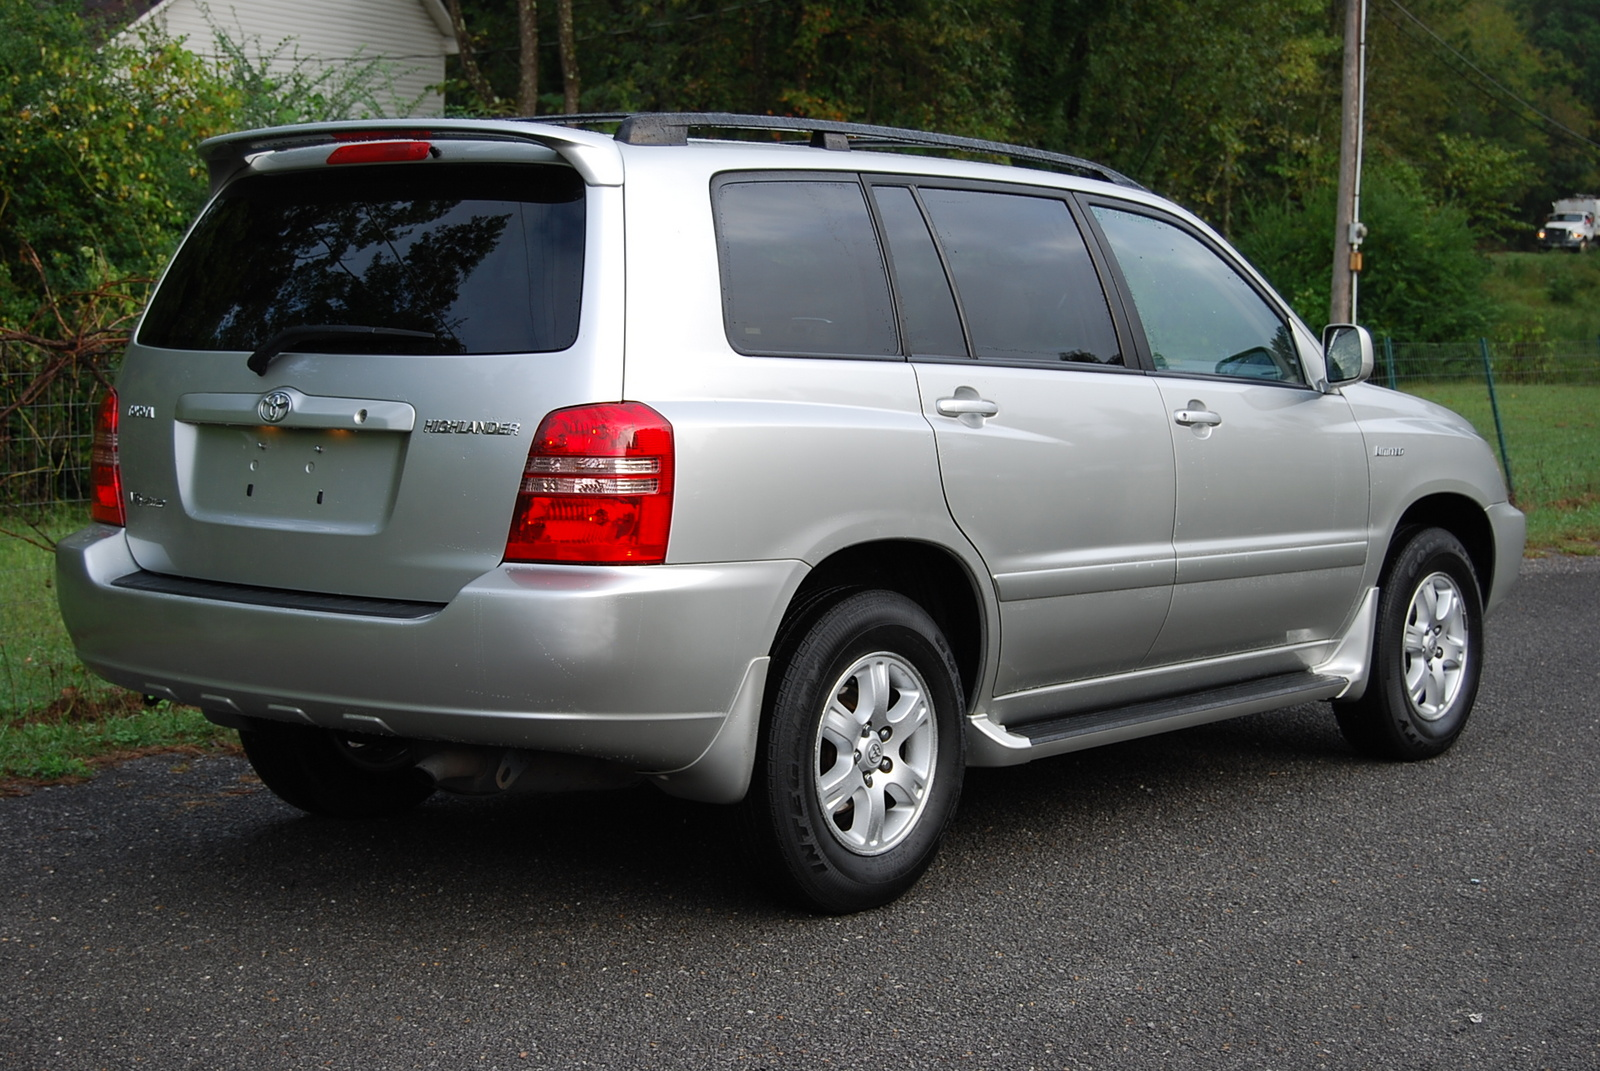 2002 toyota highlander pictures, 3. 0l. , gasoline, automatic for sale.